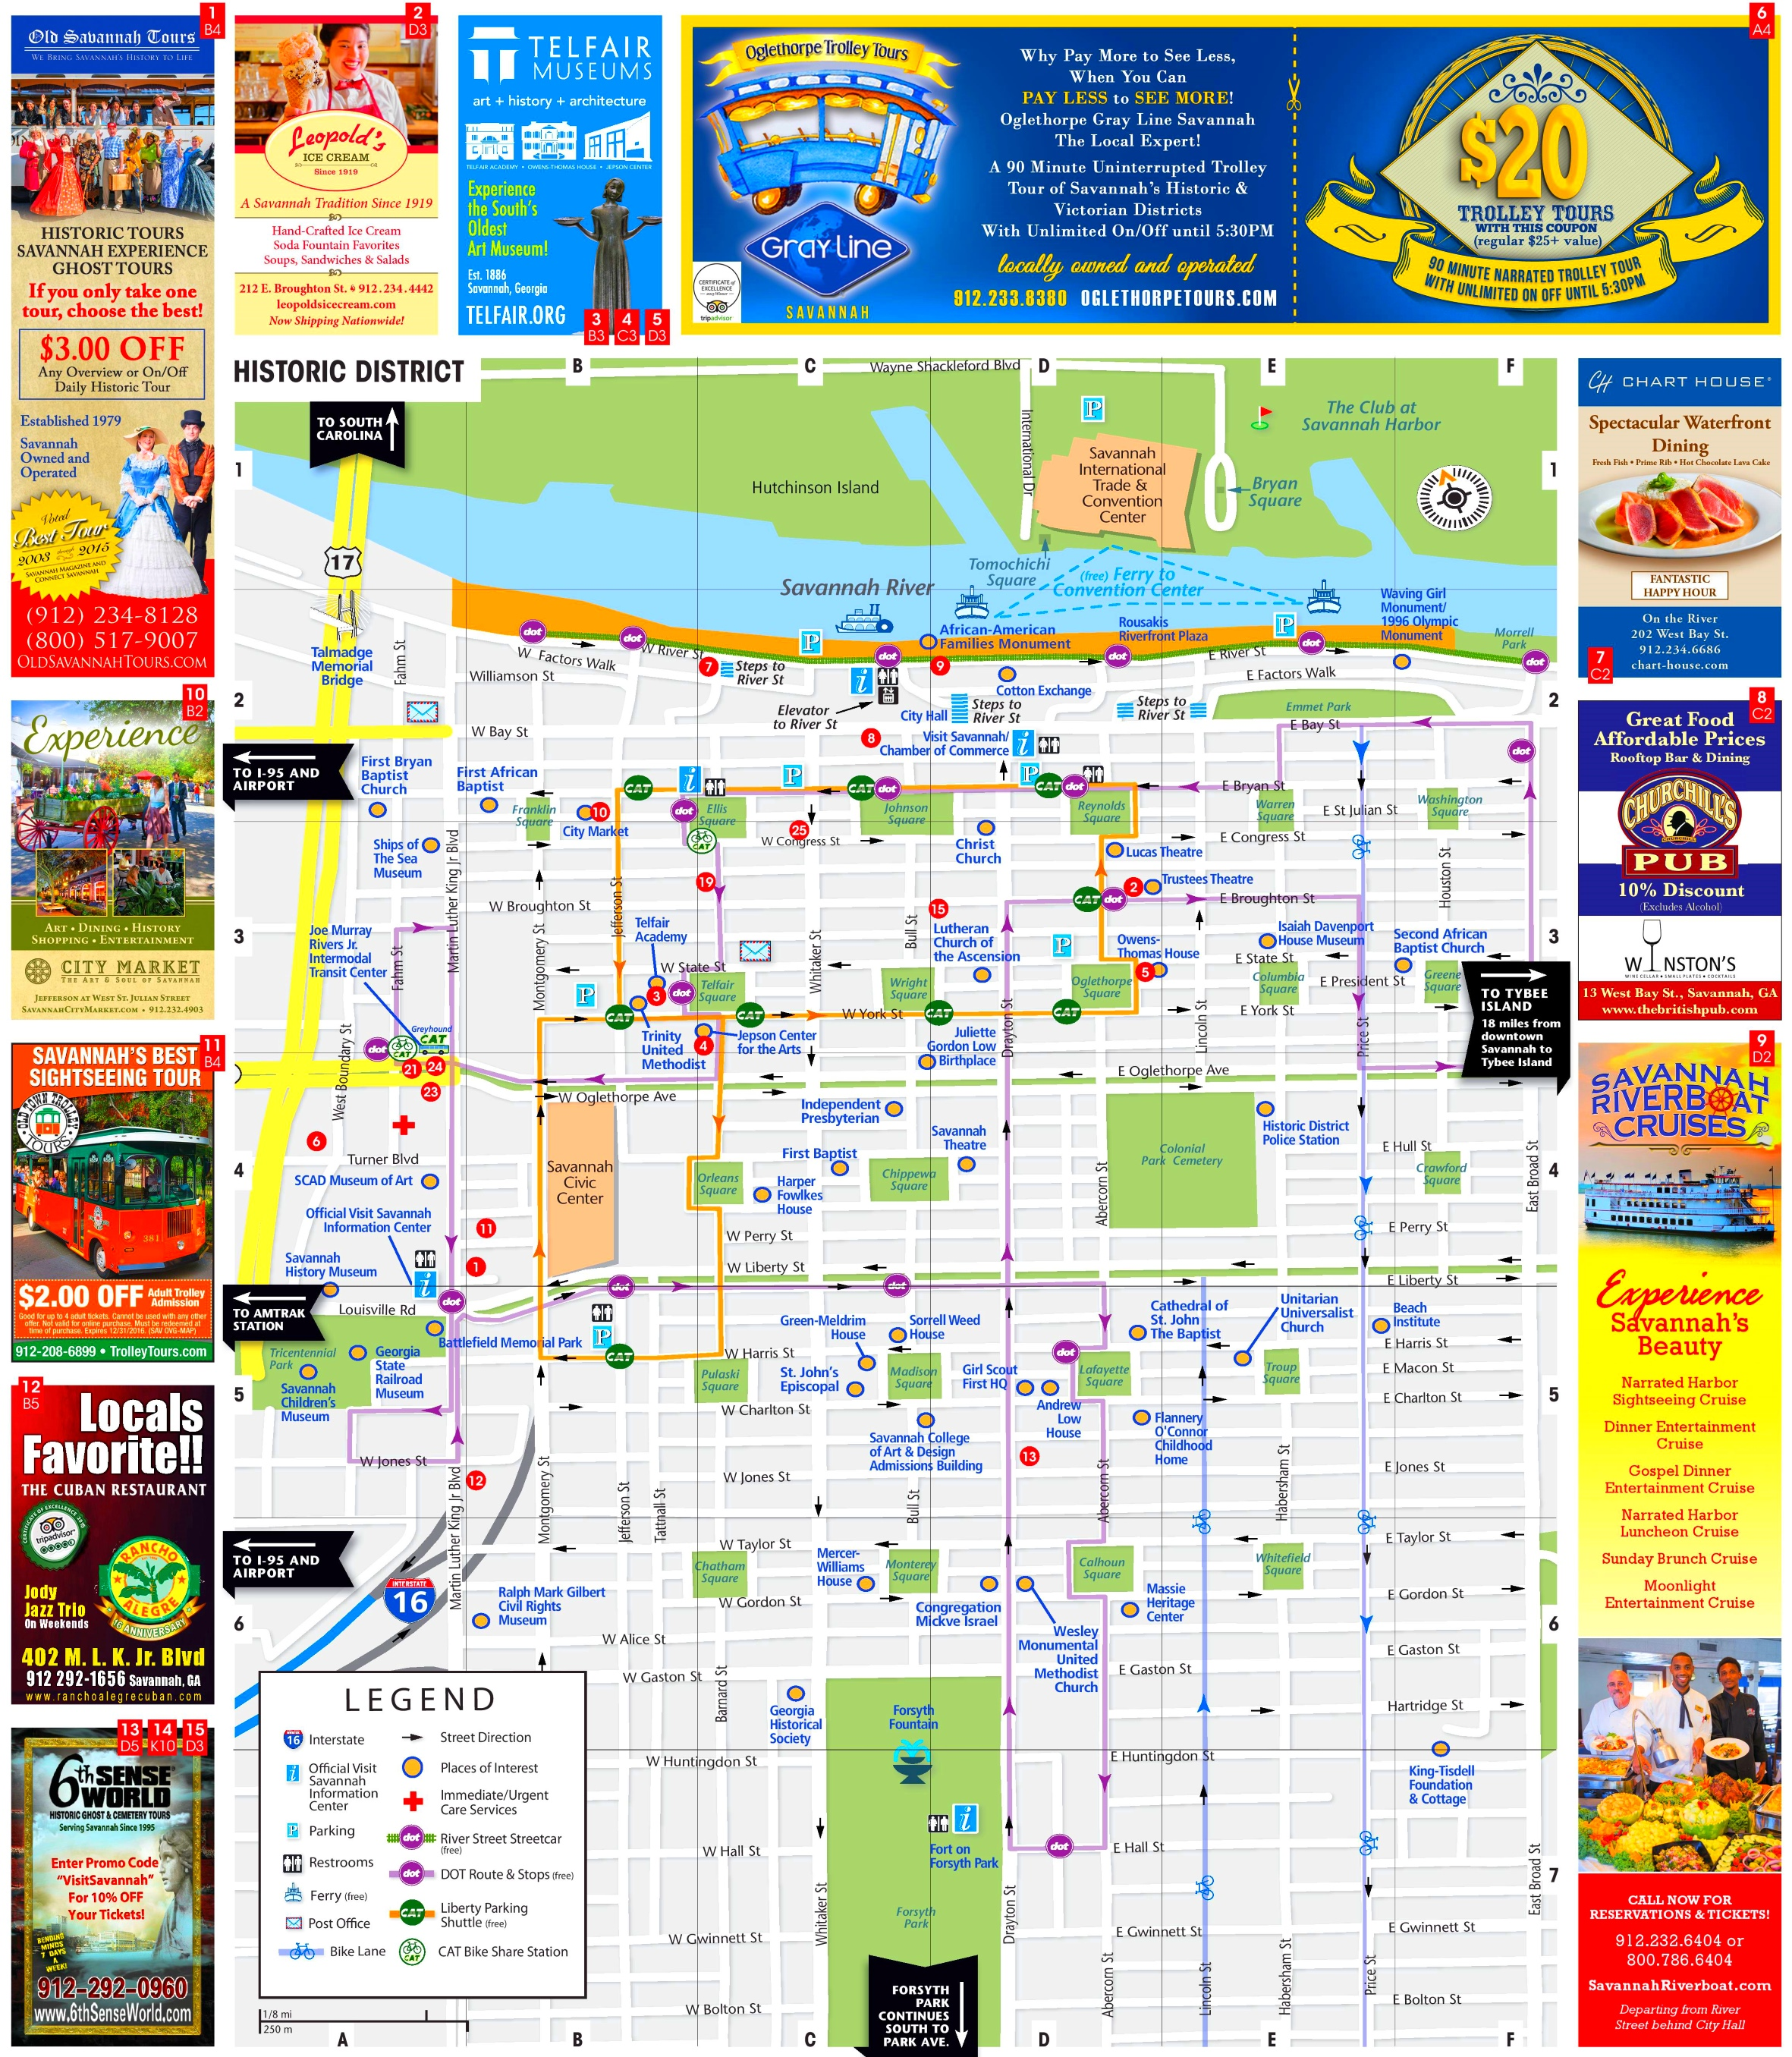 Savannah tourist map on landscape map of georgia, large detailed map of georgia, full map of georgia, golf map of georgia, island map of georgia, river map of georgia, railway map of georgia, cultural map of georgia, industry map of georgia, model map of georgia, metro map of georgia, official map of georgia, tourist places of georgia, trustee map of georgia, travel map of georgia, art map of georgia, information map of georgia, project map of georgia, city map of tbilisi georgia, weather map of georgia,